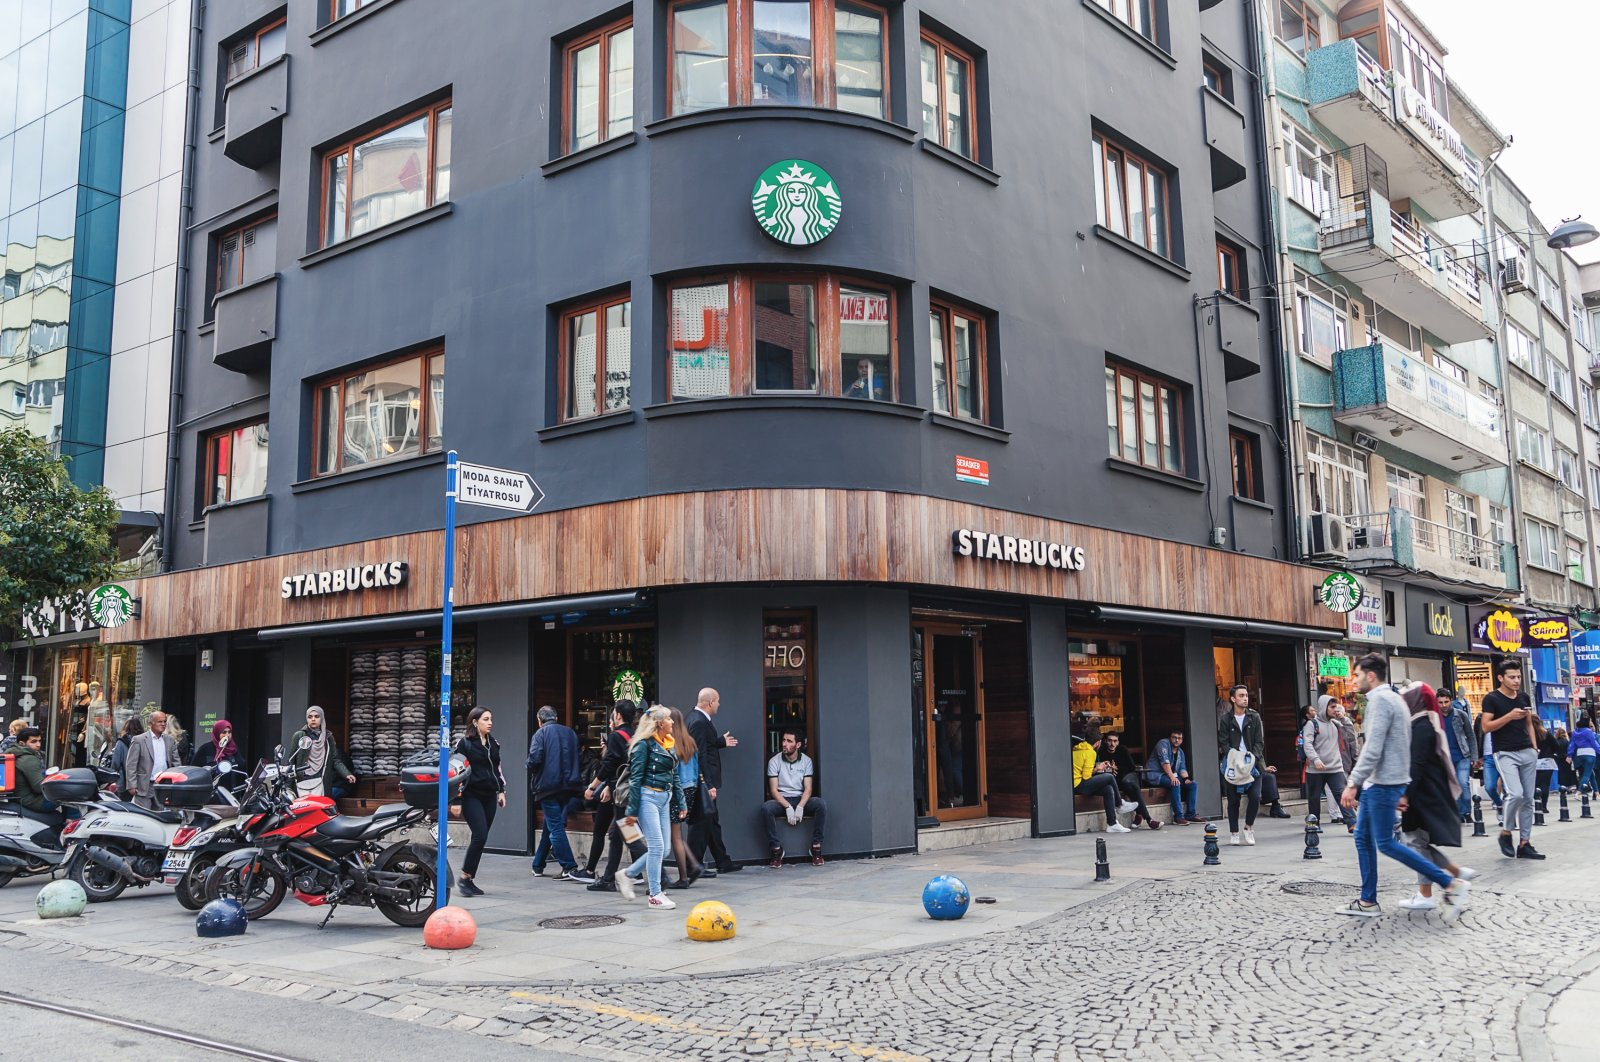 People are seen in front of a Starbucks coffee shop on the tourist street Bahariye in Kadiköy district on the Asian side of Istanbul, Oct. 4, 2018. (Shutterstock Photo)